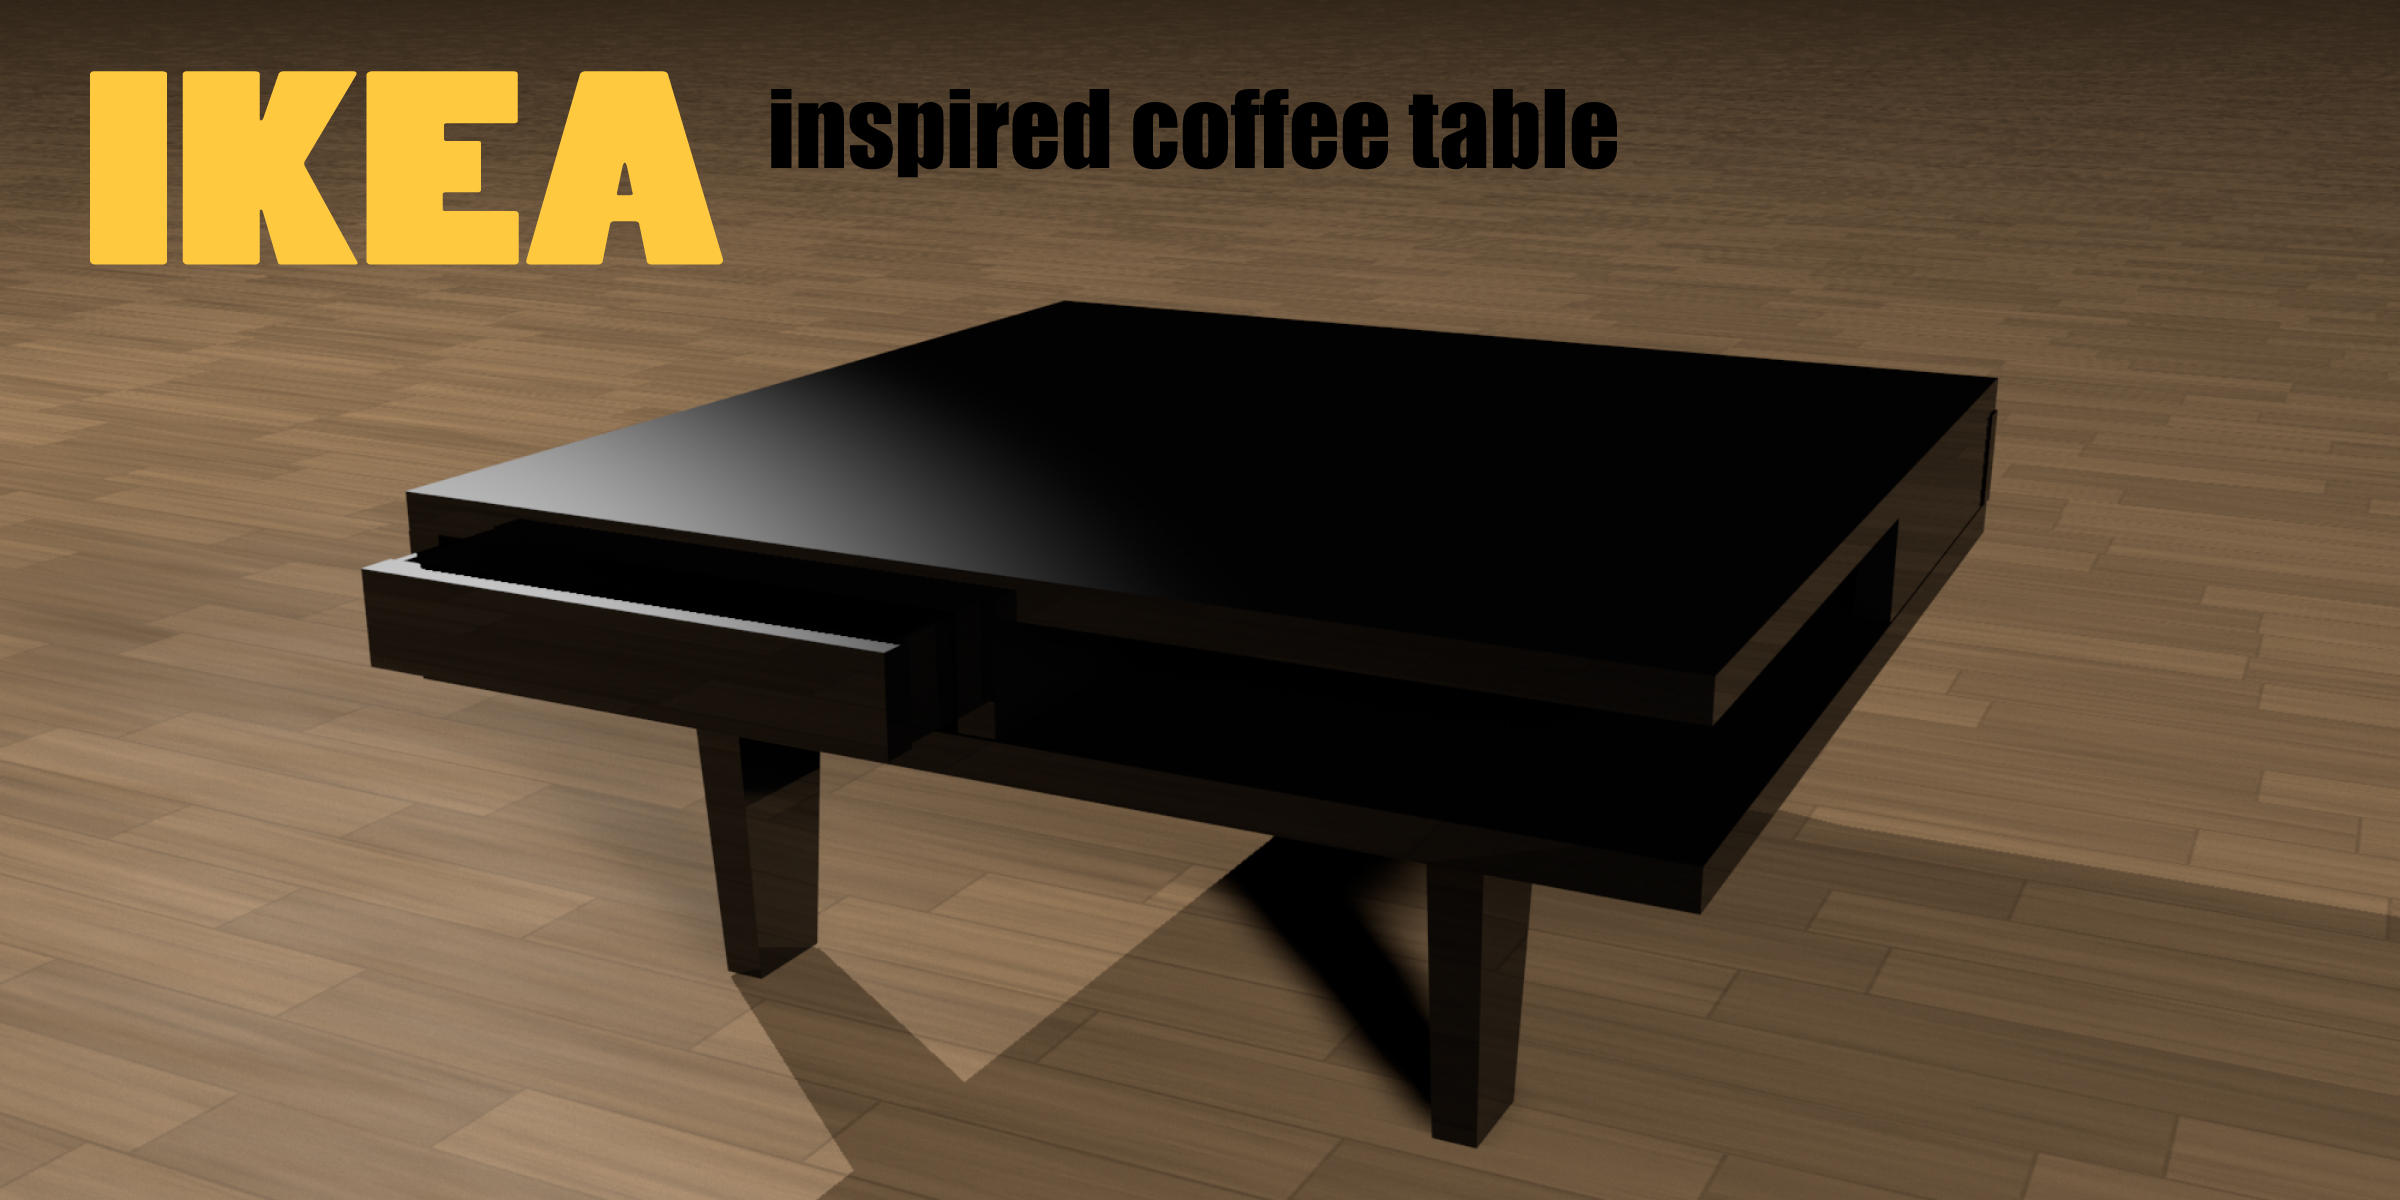 Ikea inspired coffee table by integritydesign on deviantart for Table design 3d